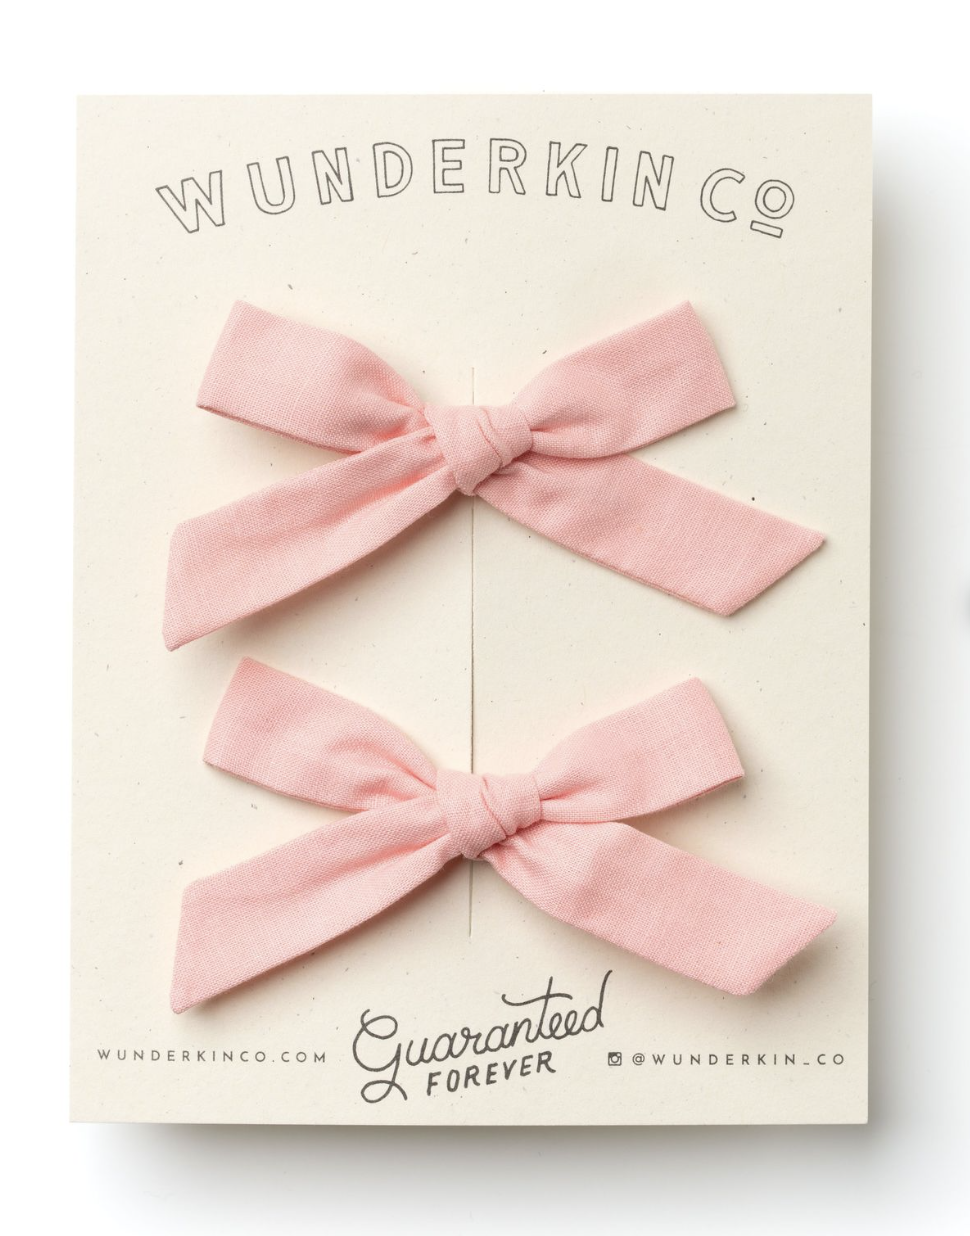 Bows - Wunderkin Co never disappoints with their curated color selection for each season and this is the perfect blush tone for any hair color.